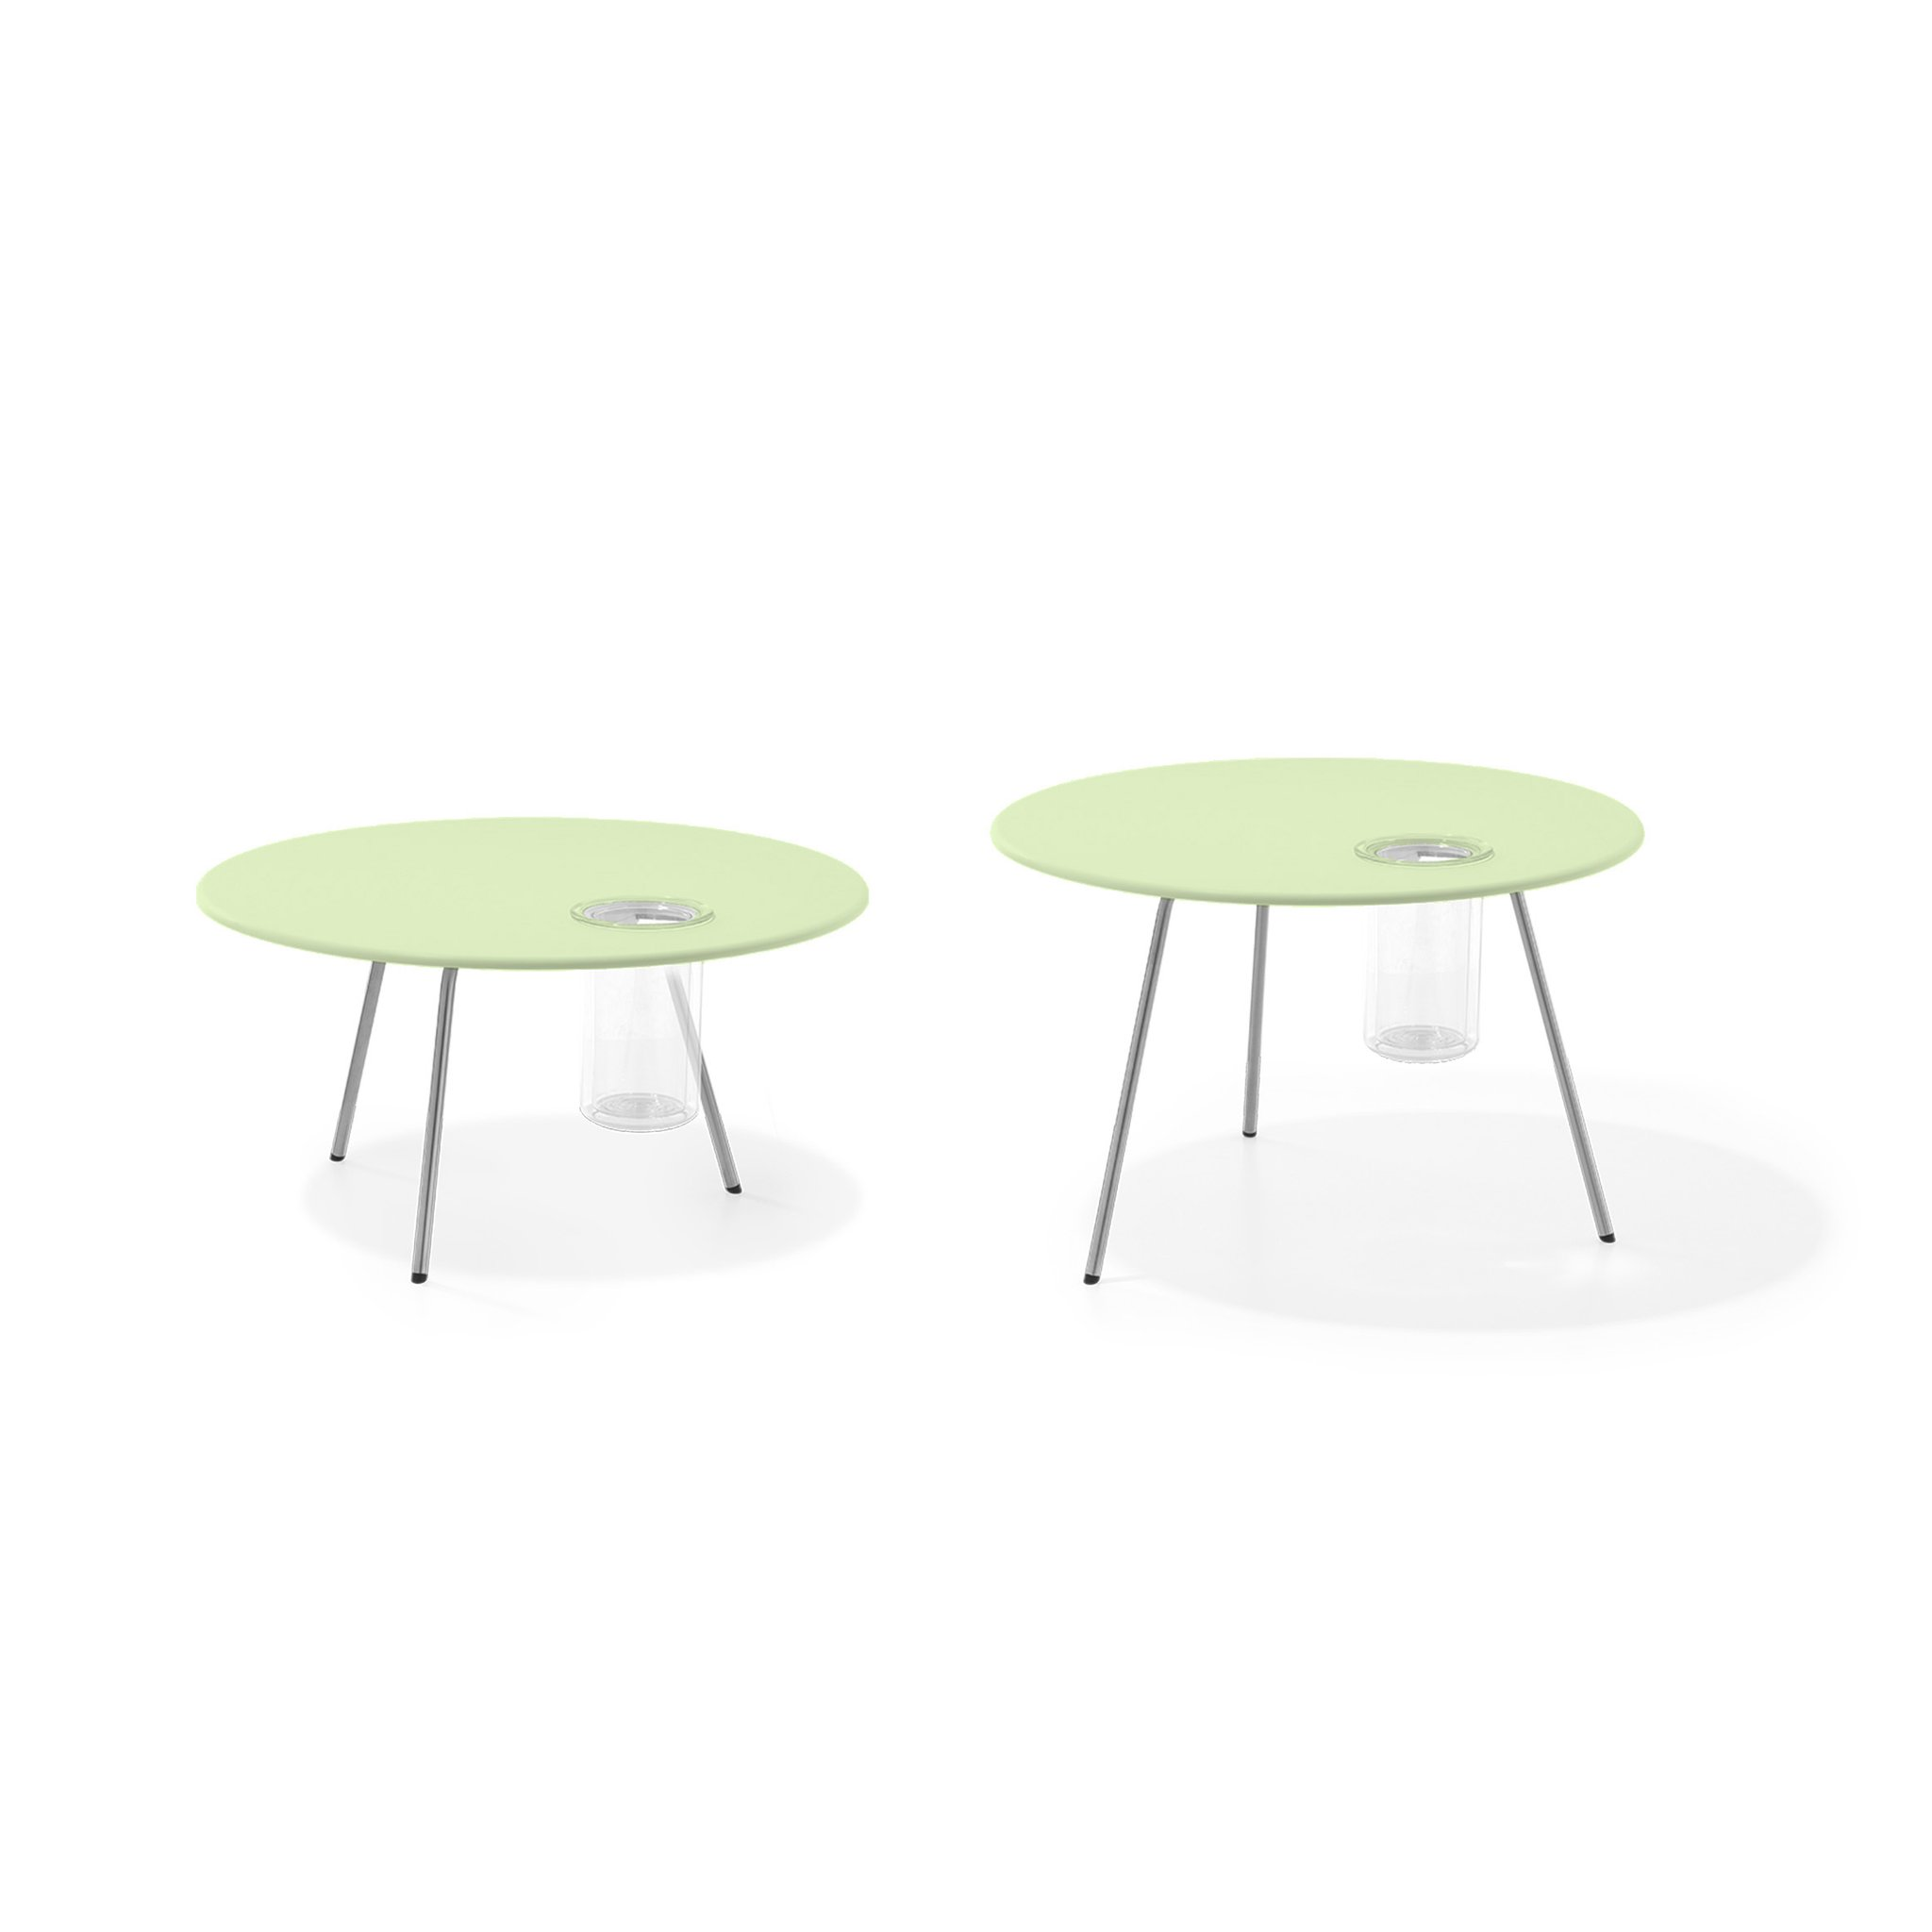 viteo air side table round with wine cooler stillfried wien green outdoor save storage ott target retro sideboard ikea toy cubes hampton bay pembrey free patterns for quilted